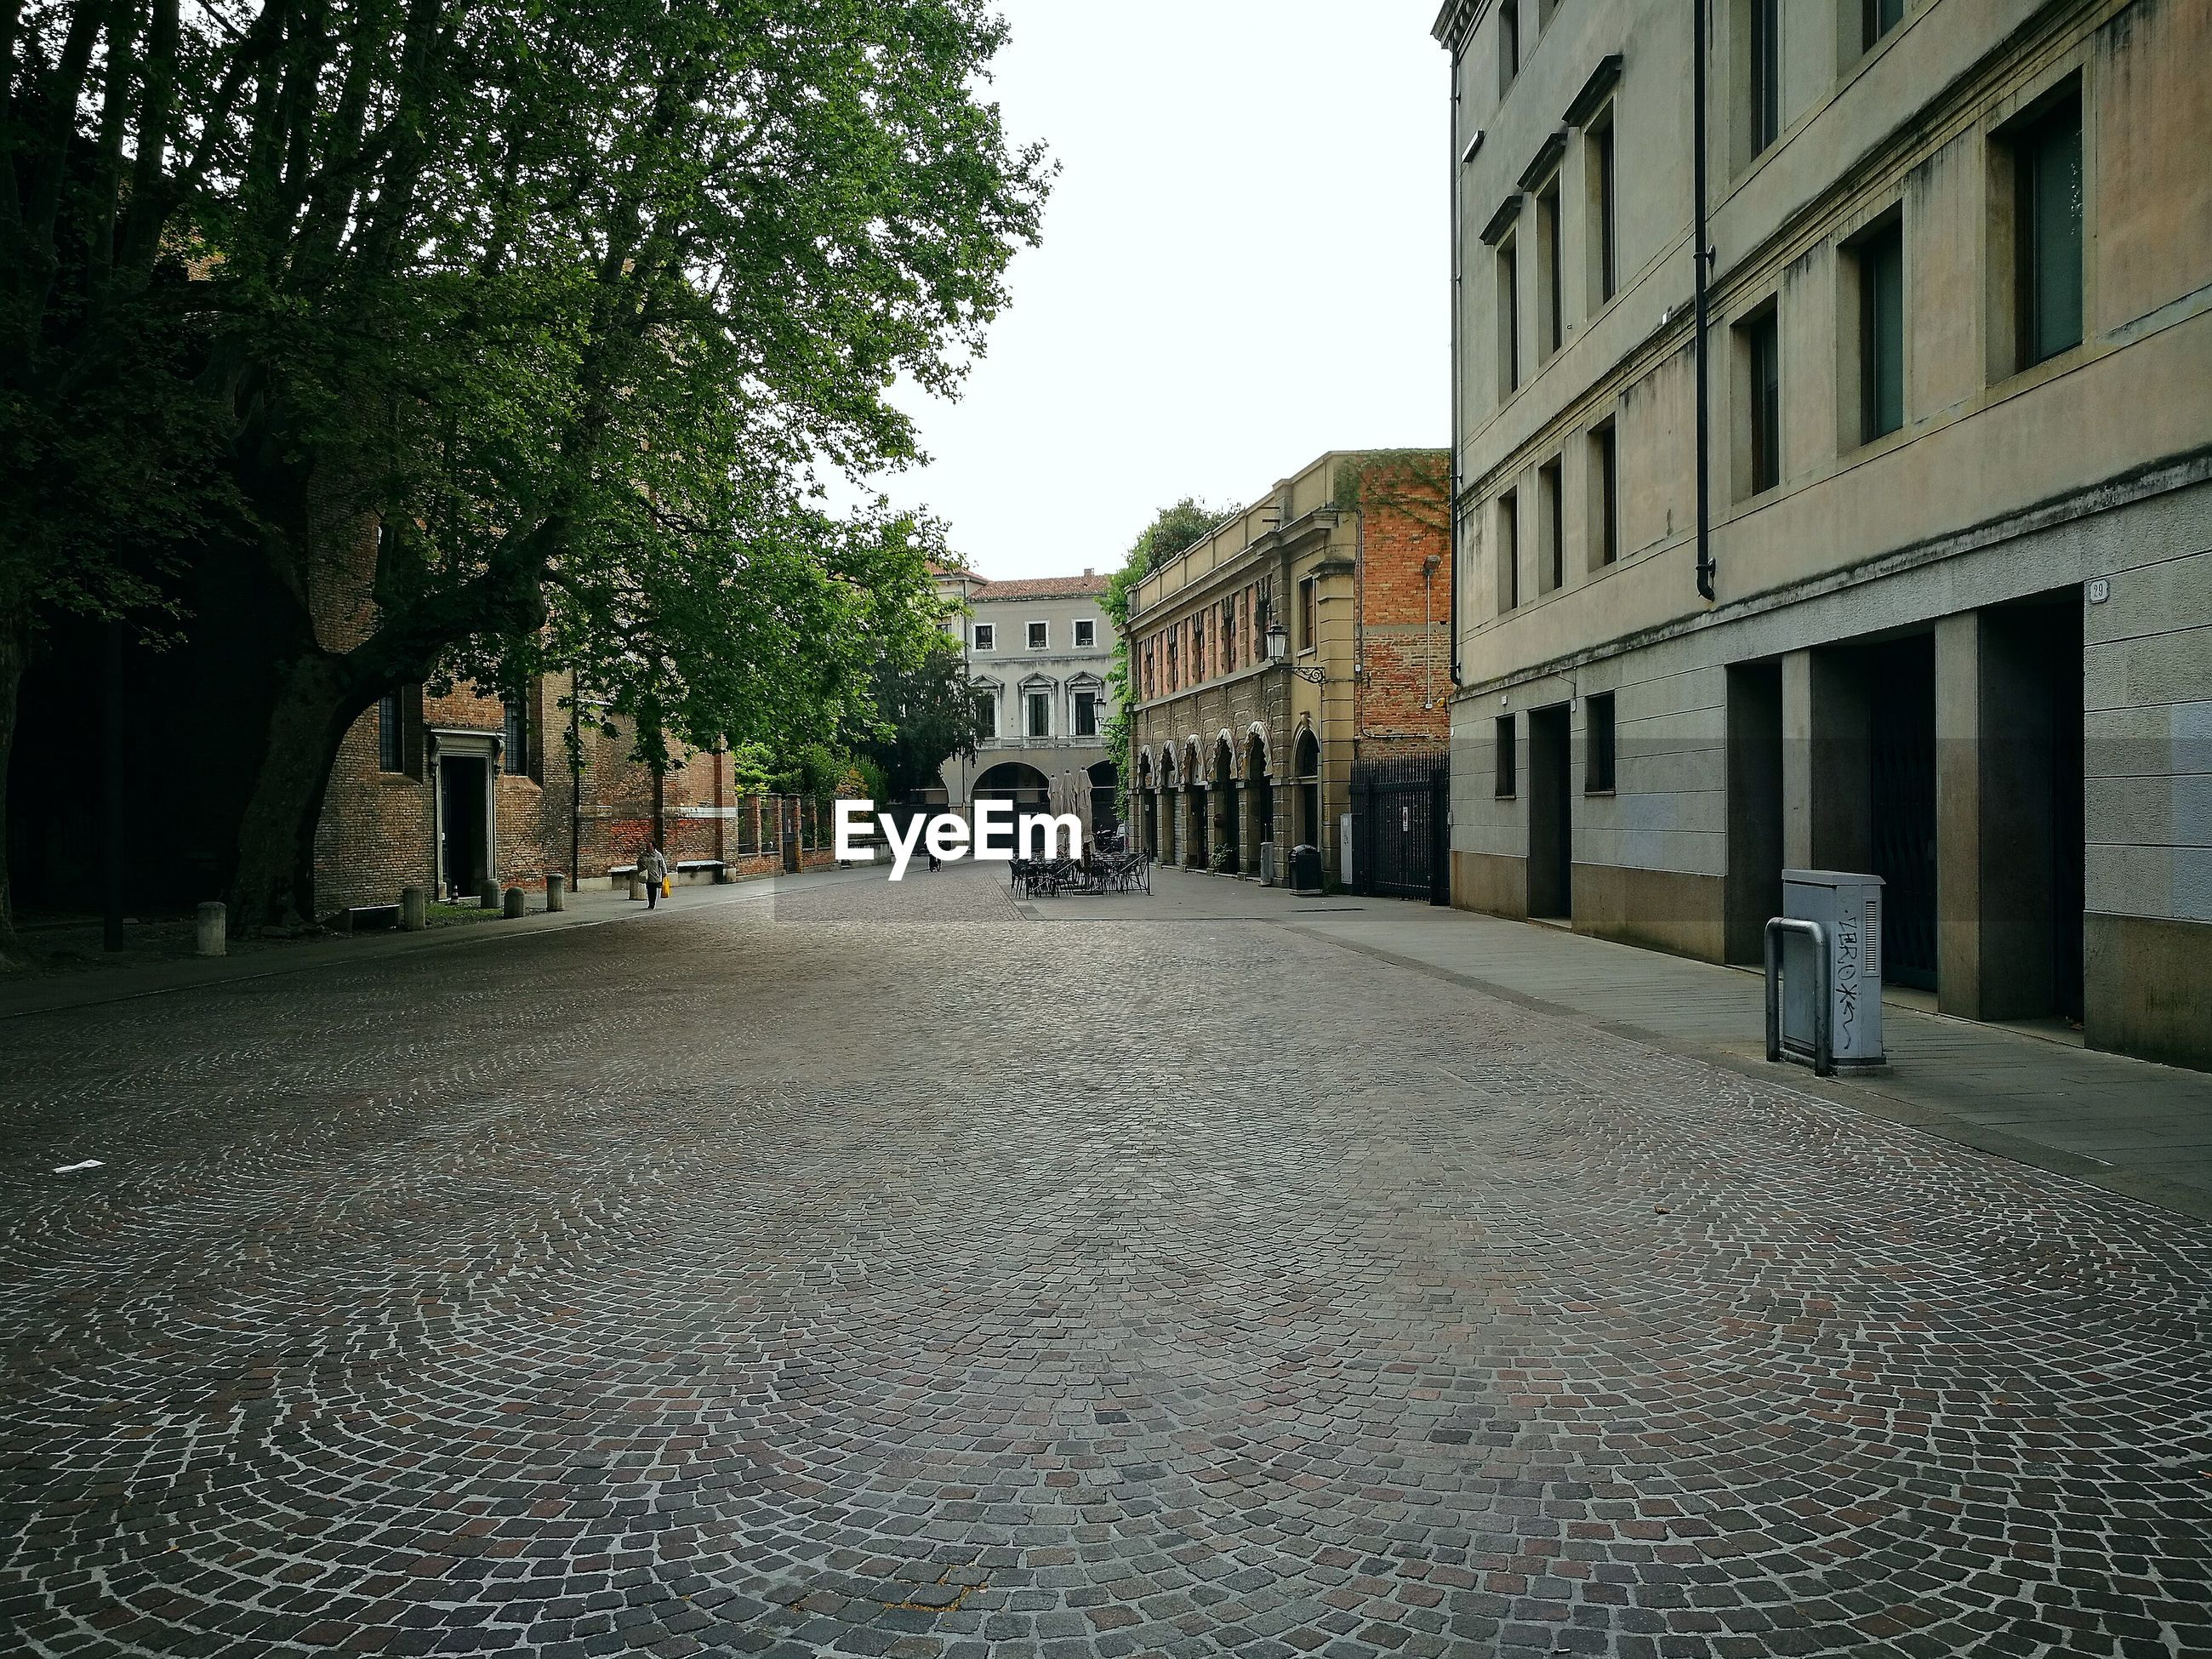 VIEW OF STREET